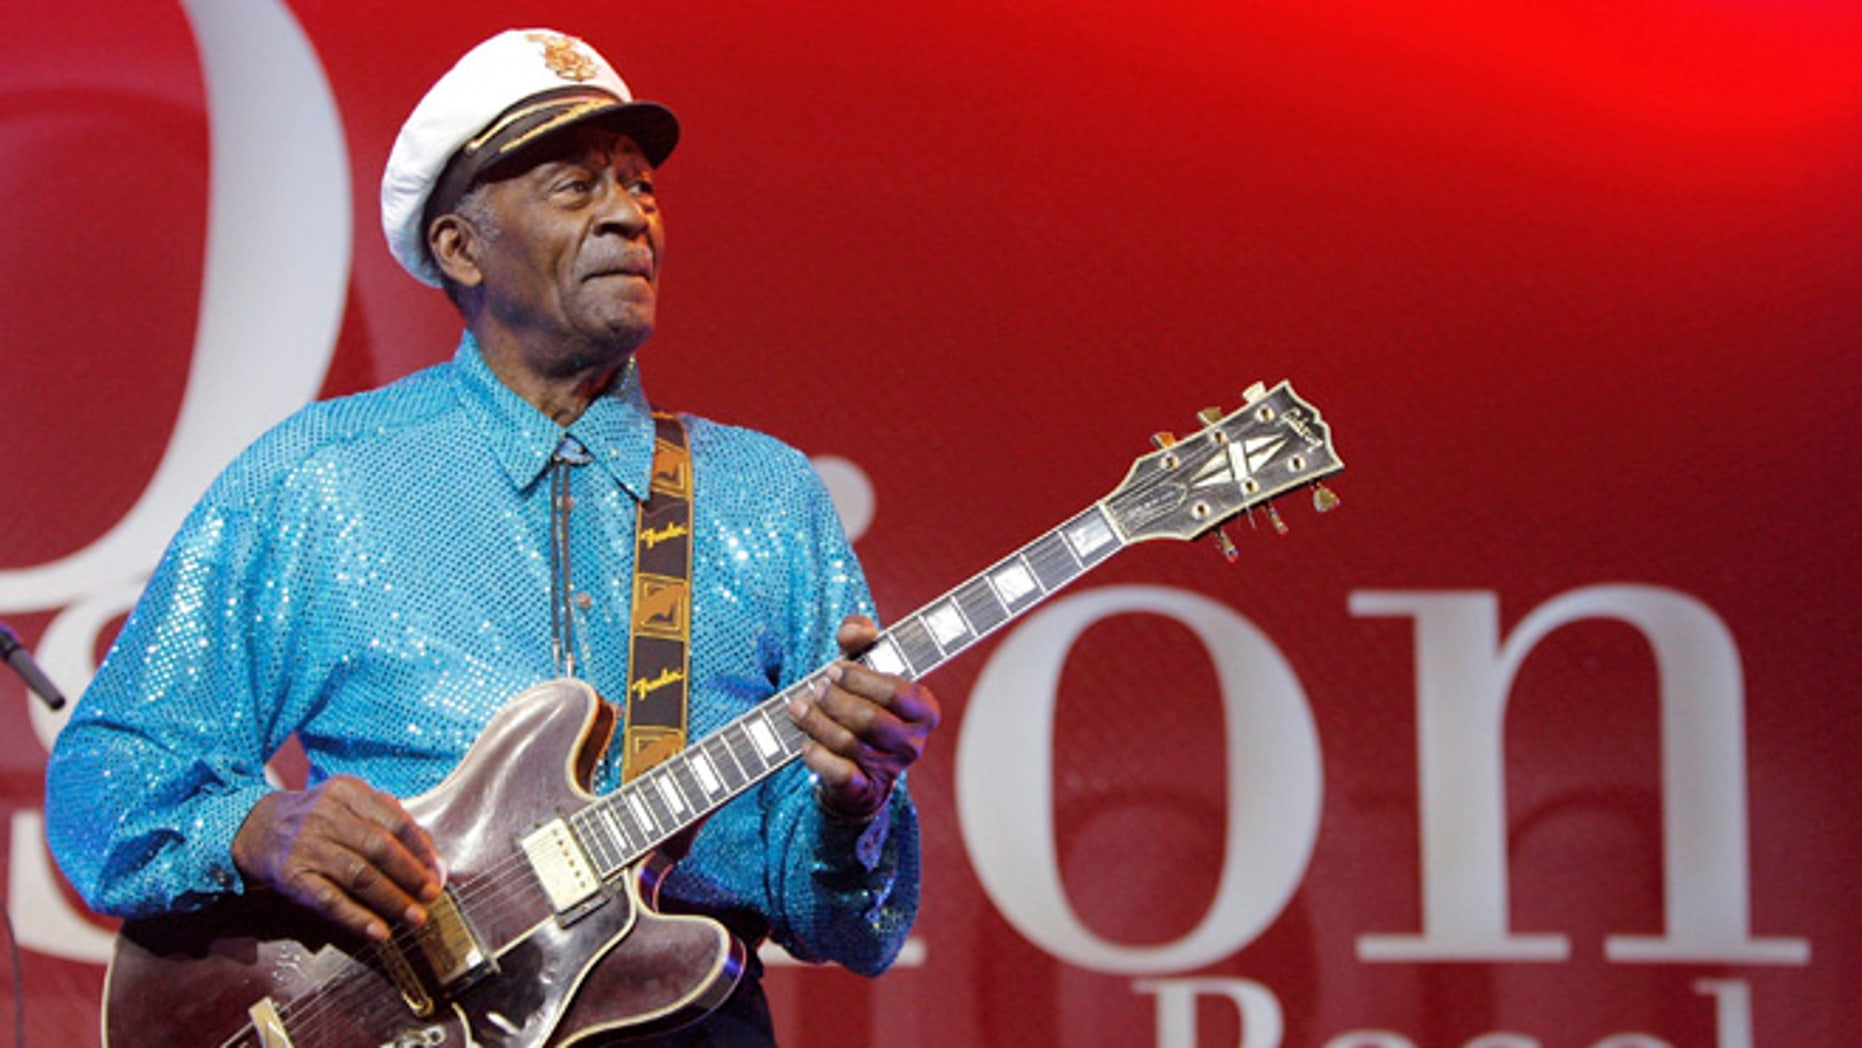 Chuck Berry was working on a new album that will be released this year.